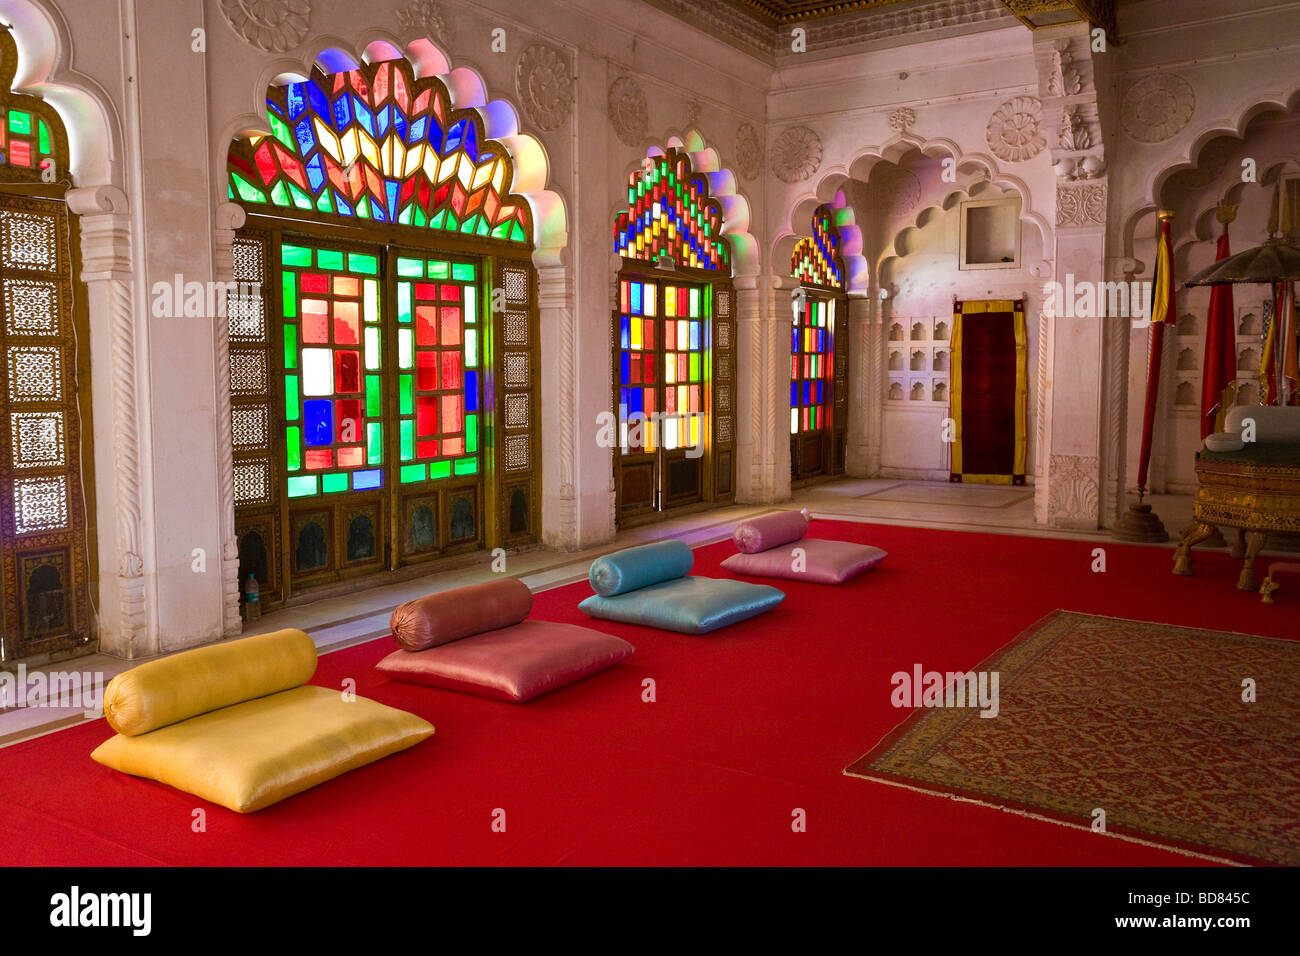 Gaudy room in the palace at Jodhpur with carved stonework and coloured glass above a red carpet and colourful cushions - Stock Image